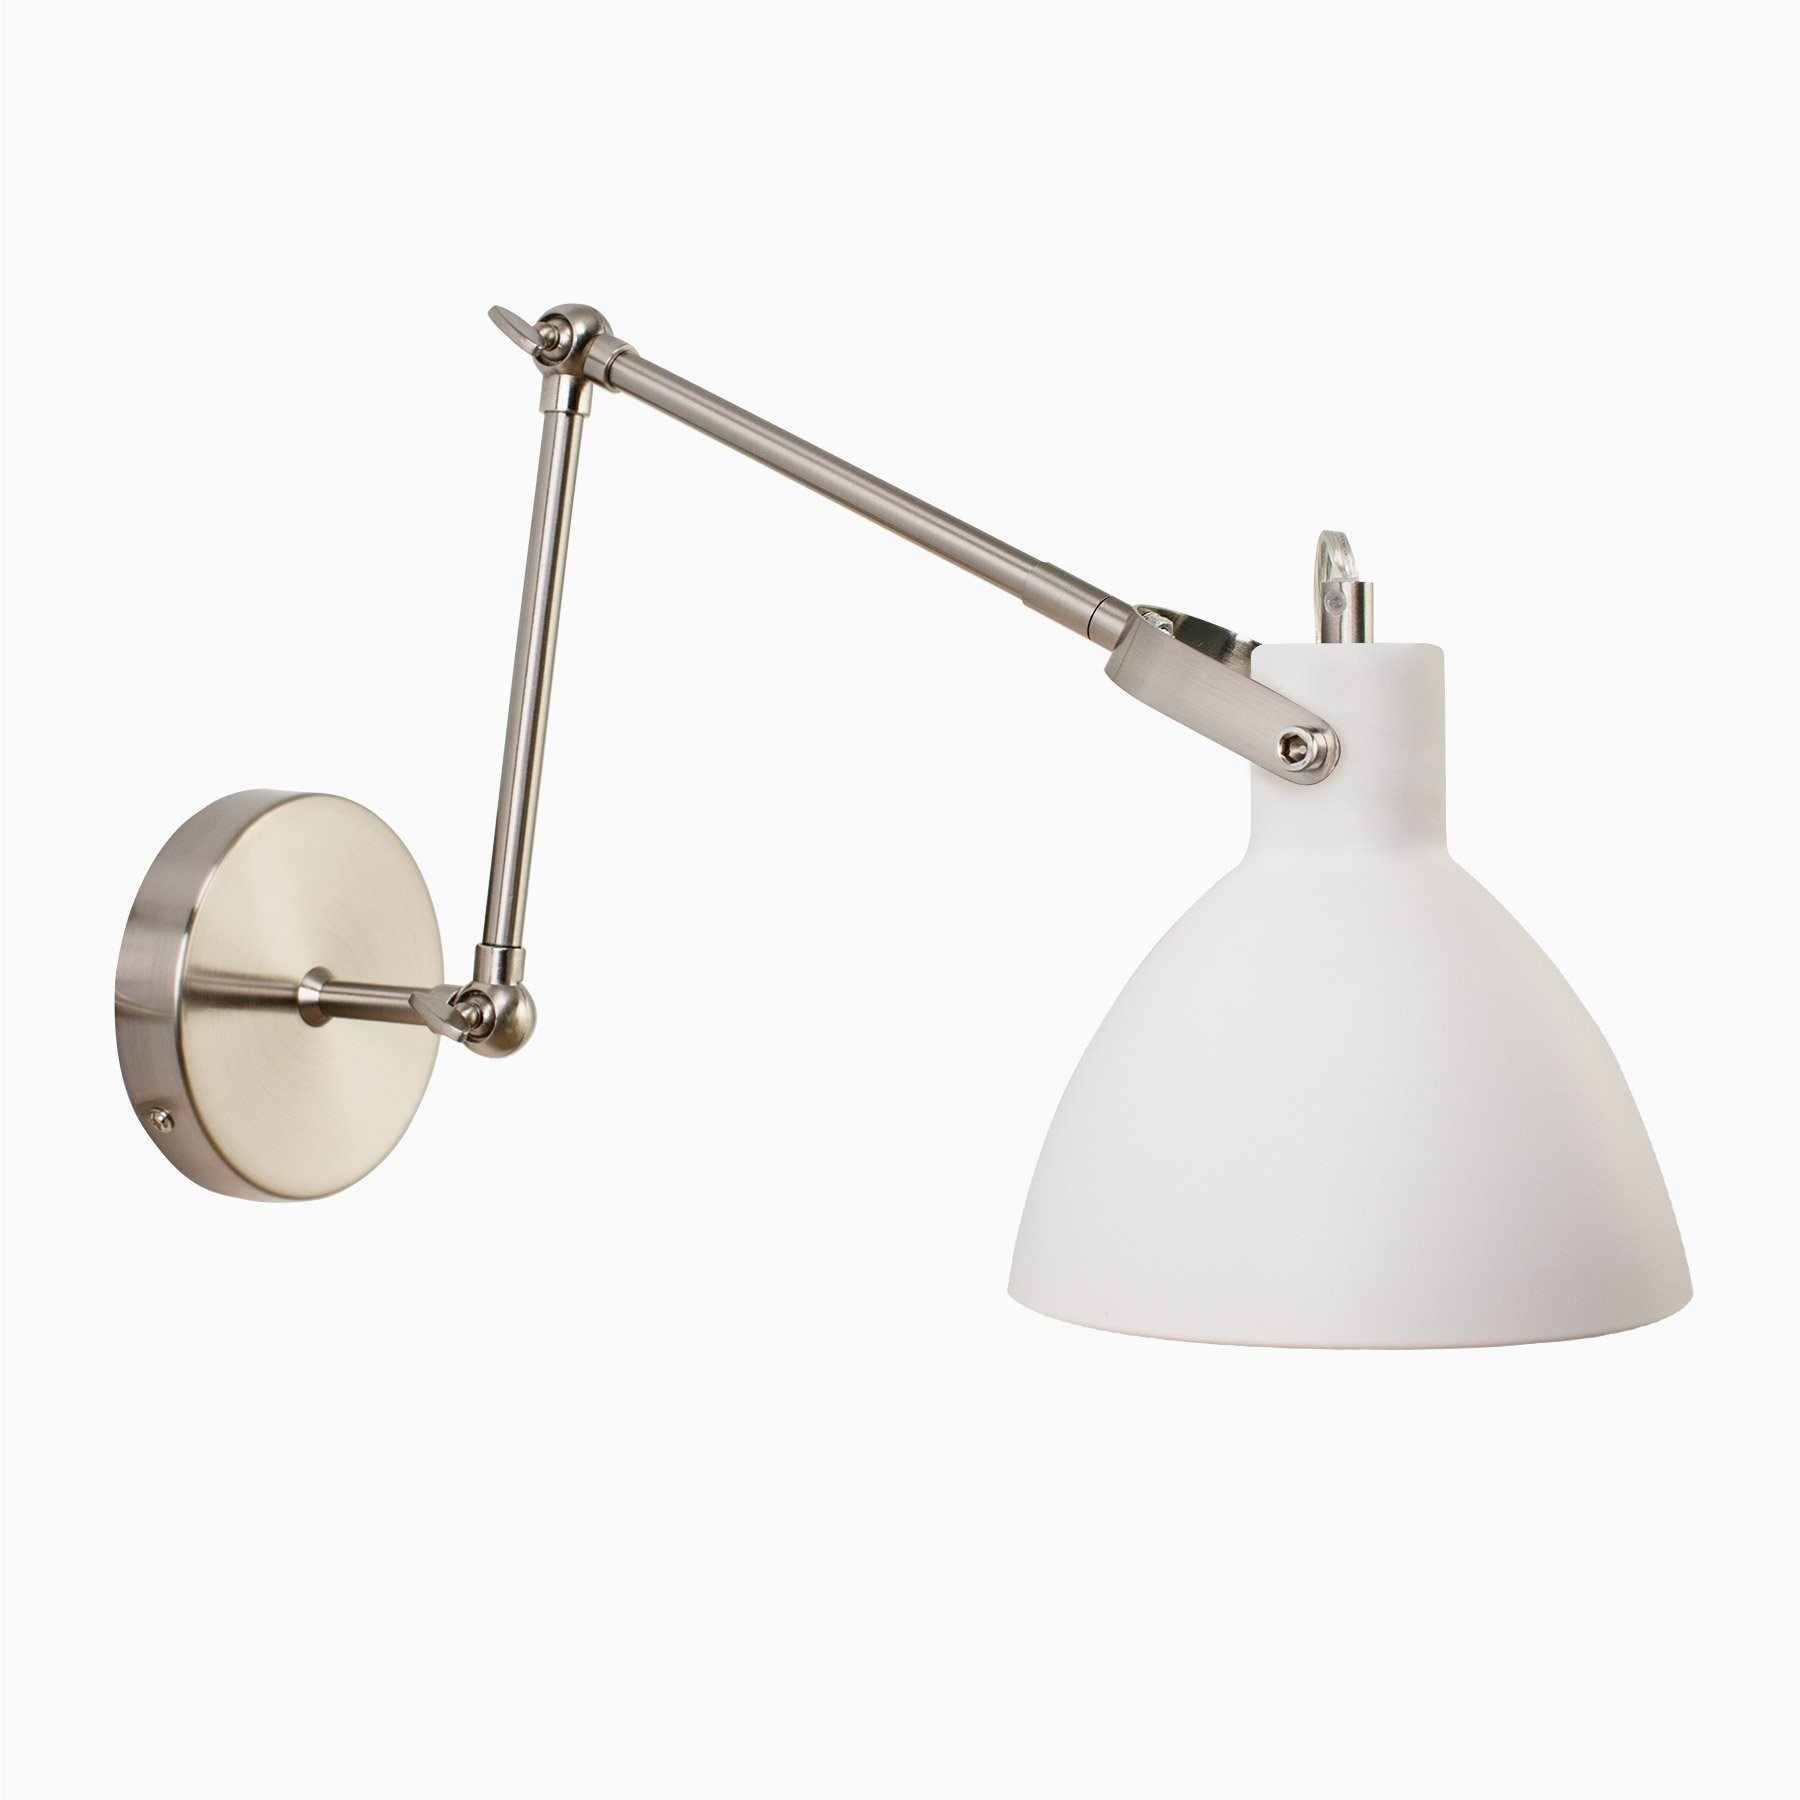 Aimee single light wall sconce wall mounted wall sconce aimee single light wall sconce previous next mozeypictures Choice Image